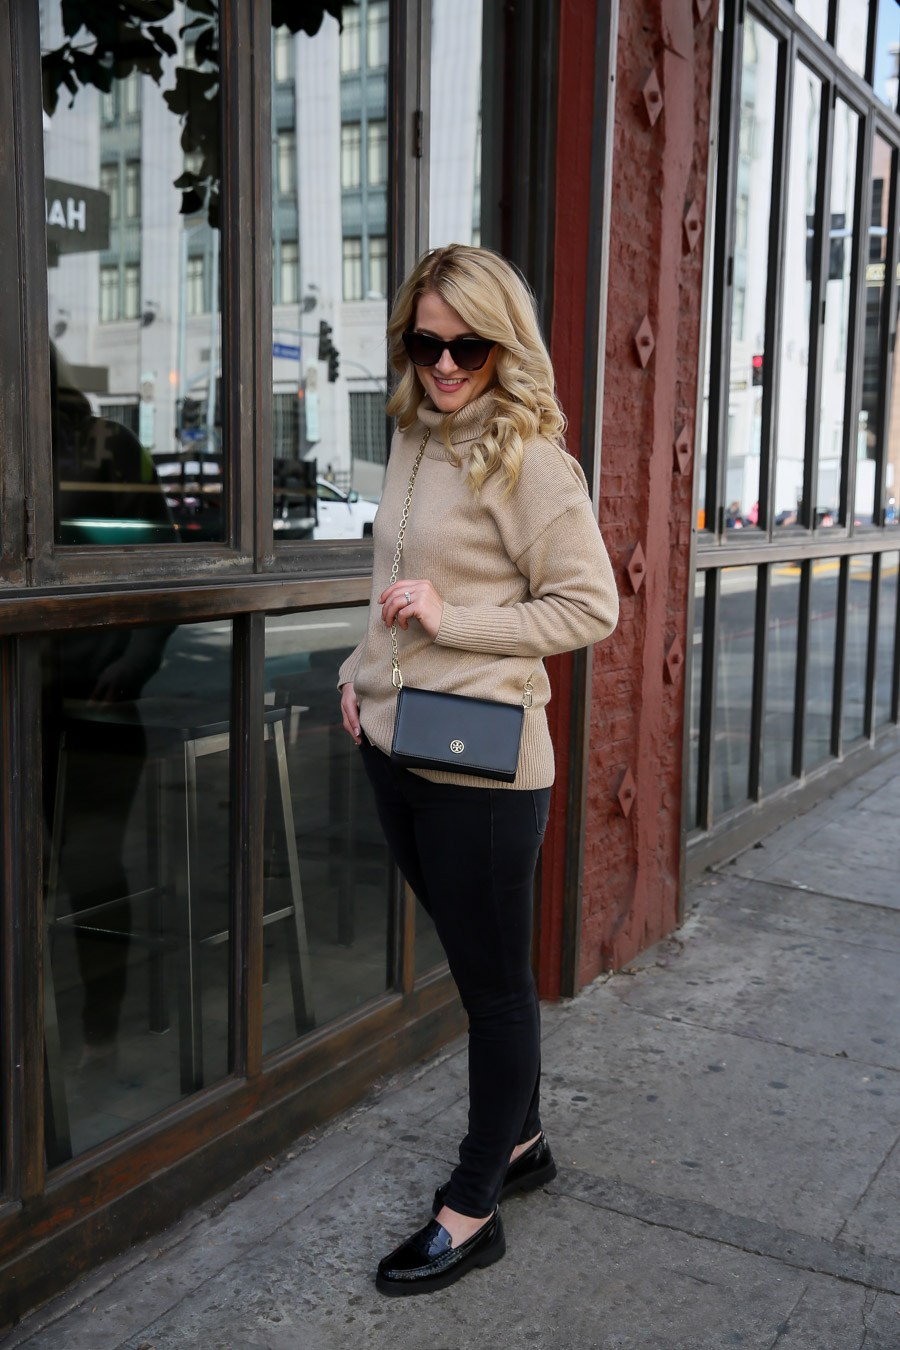 Tory Burch Clutch Outfit with Turtleneck Sweater